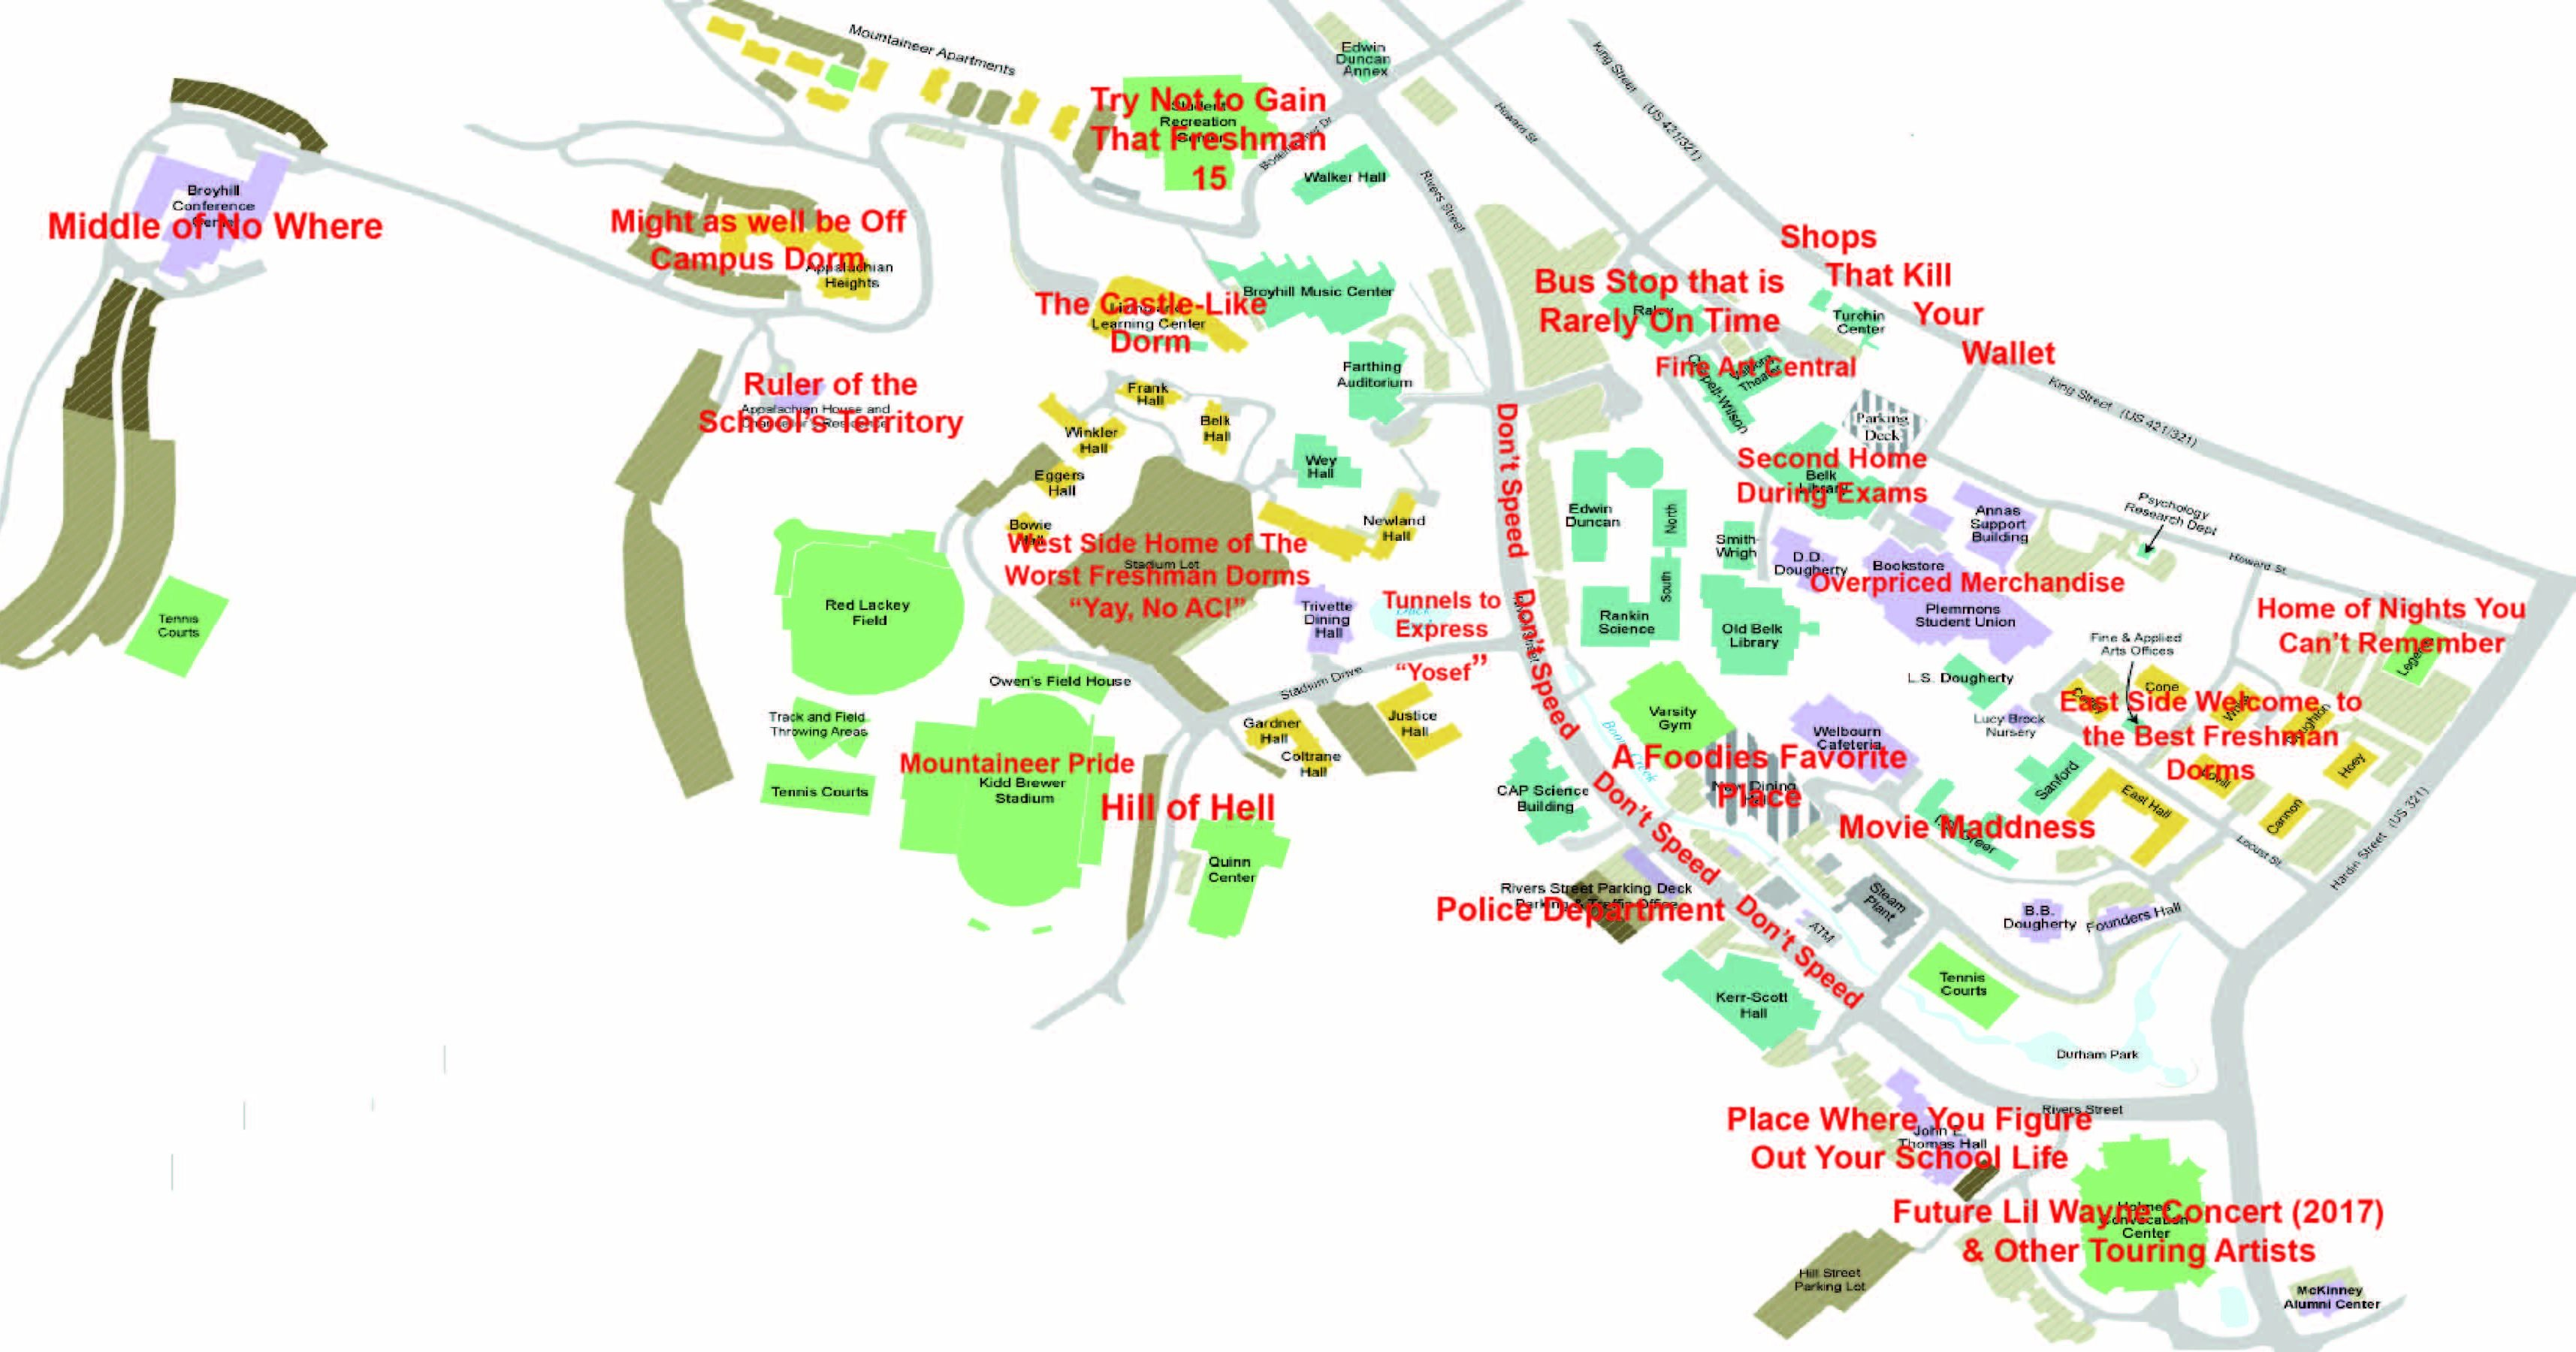 An honest map of App State because we all know Boone better than